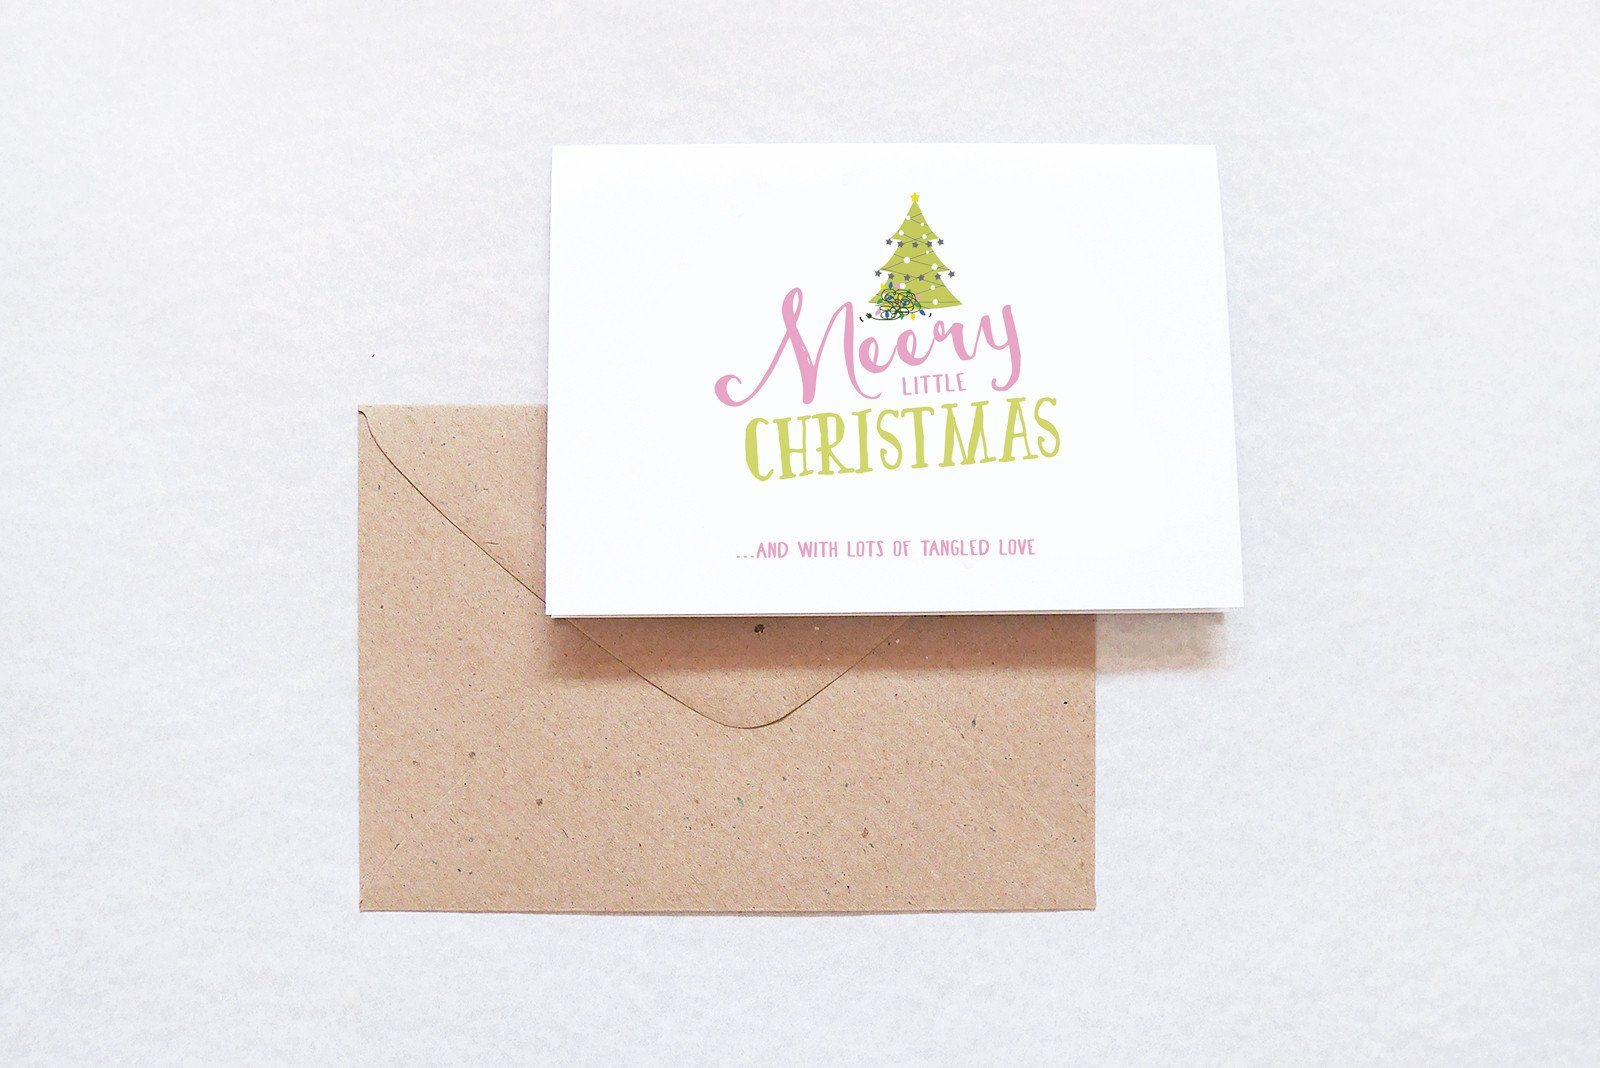 Merry Little Christmas Card - Christmas Cards - TispyTopsy - Naiise